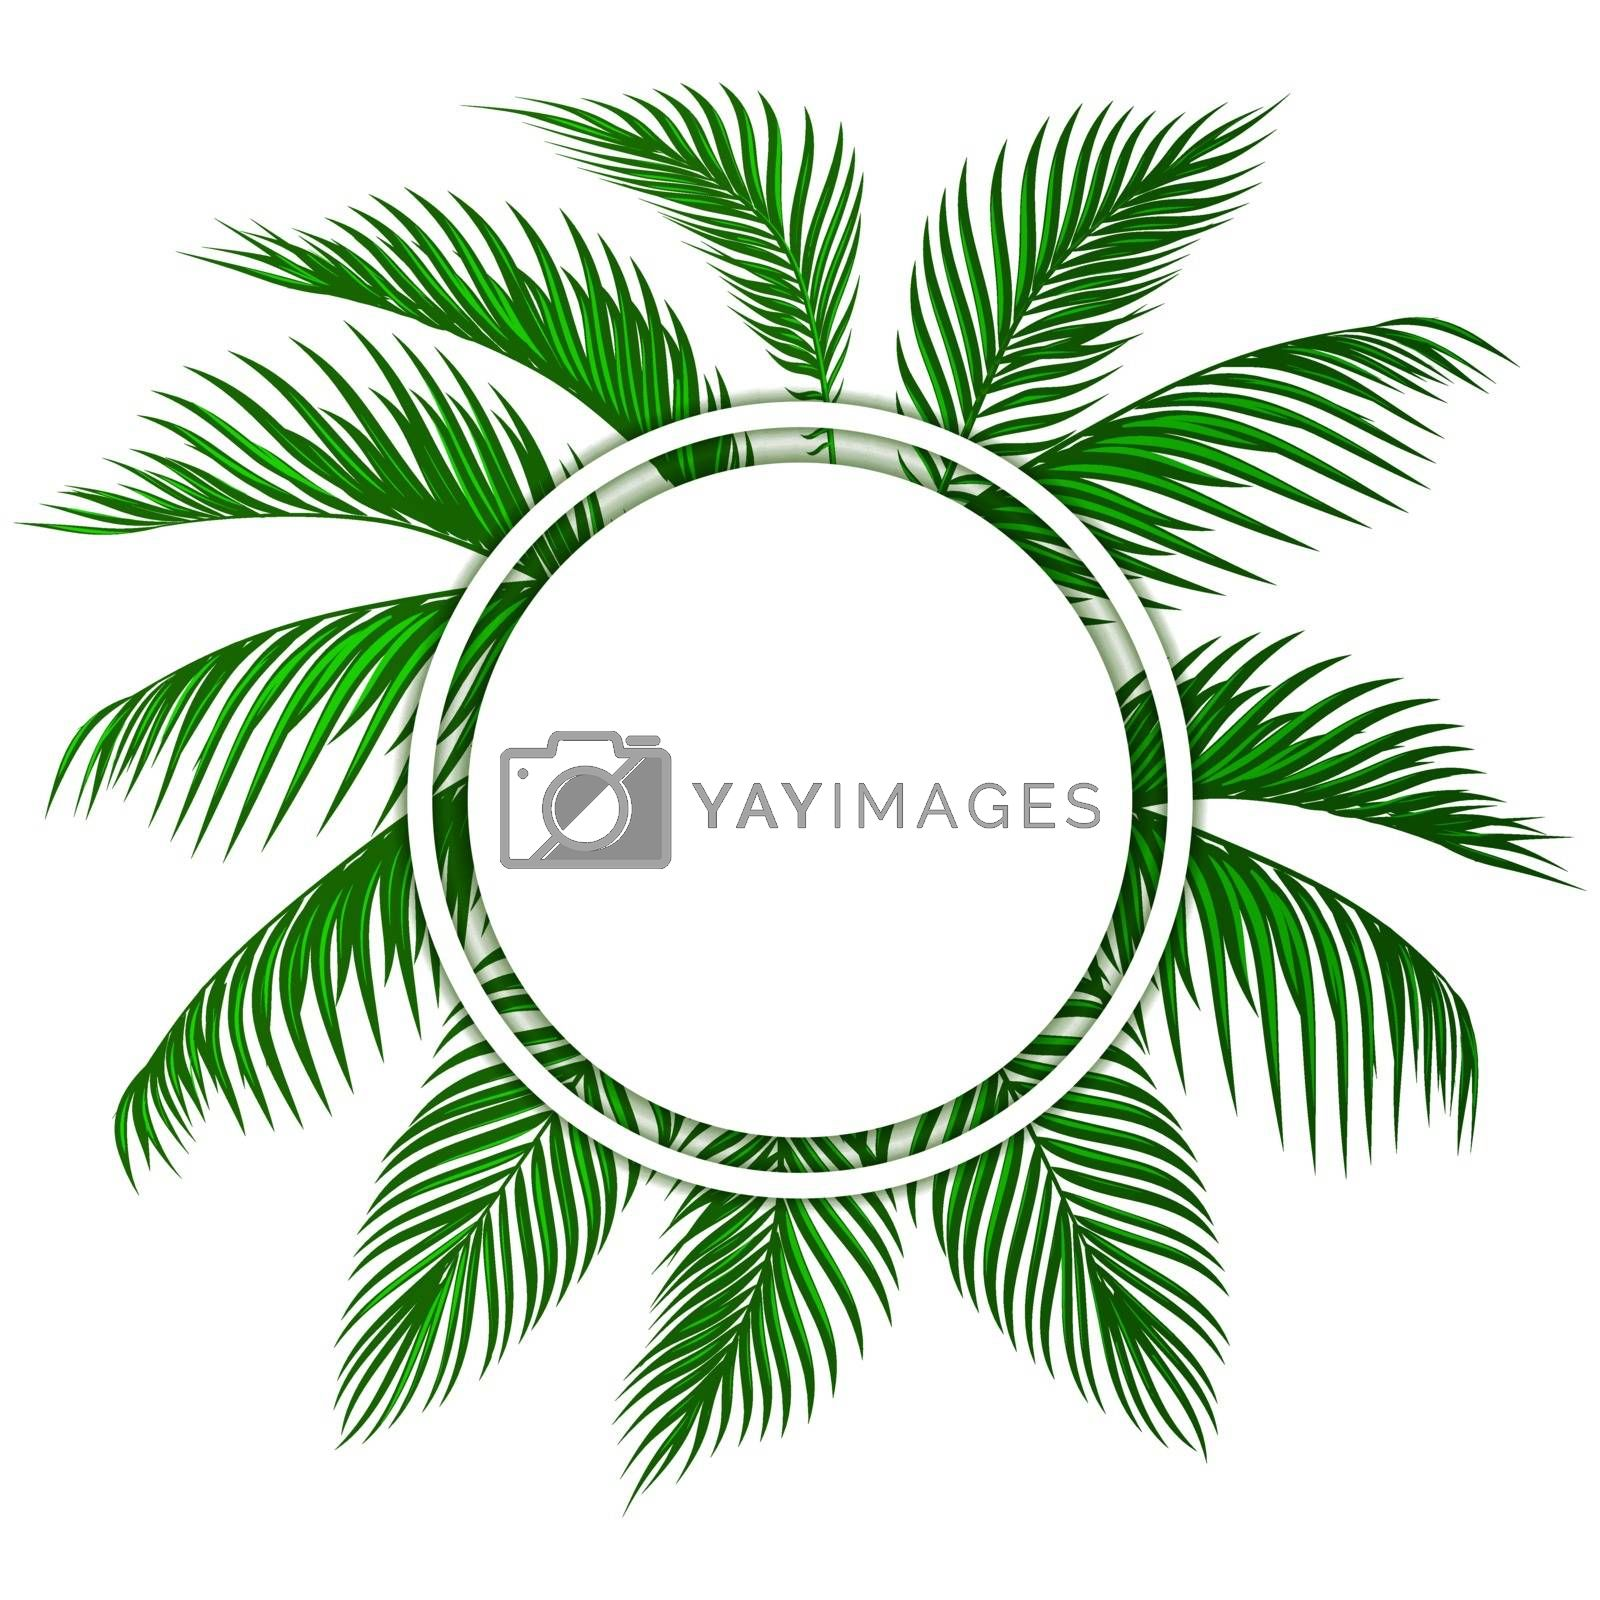 Green tropical palm leaves. Place for advertising, announcements. illustration by lilystudio